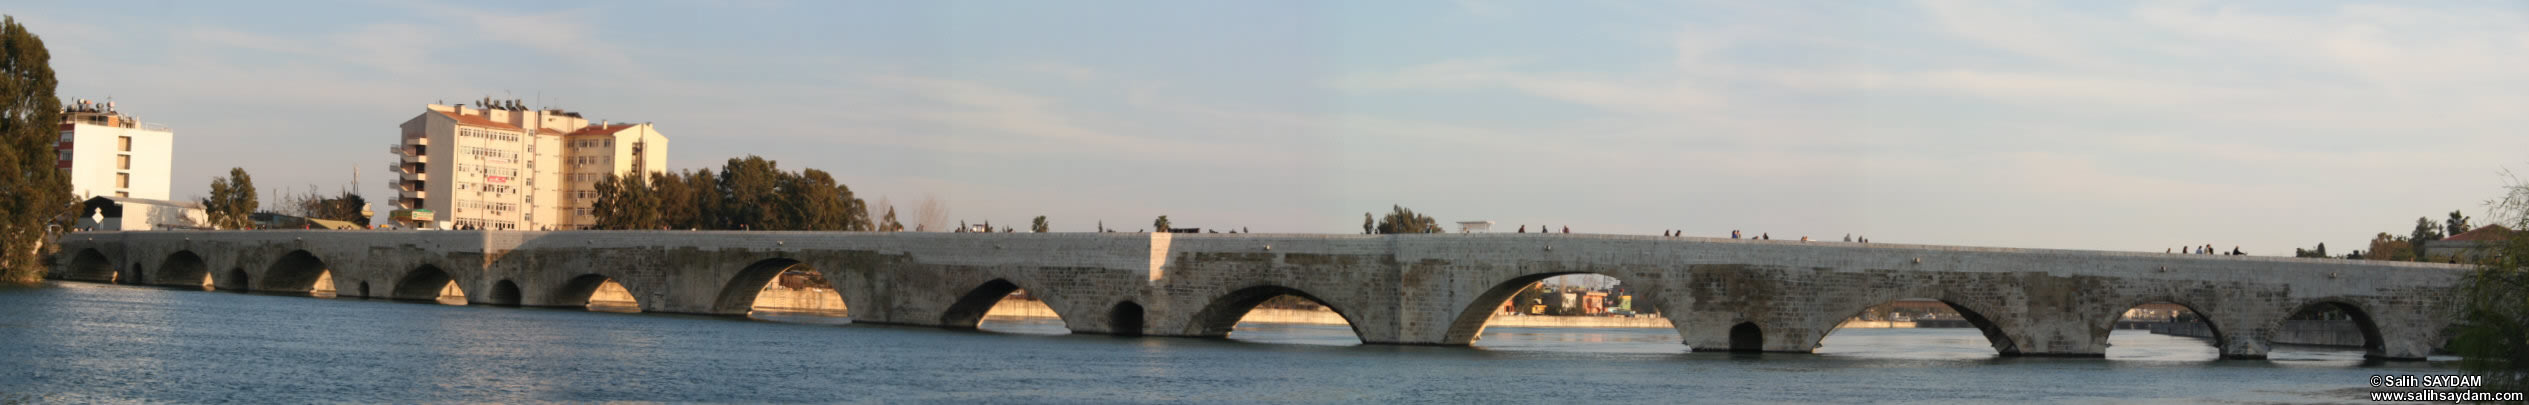 Panorama #01 of Taskopru (Stone Bridge), which was build over the River Seyhan by the Roman Emperor Hadrianus in the 4th century.